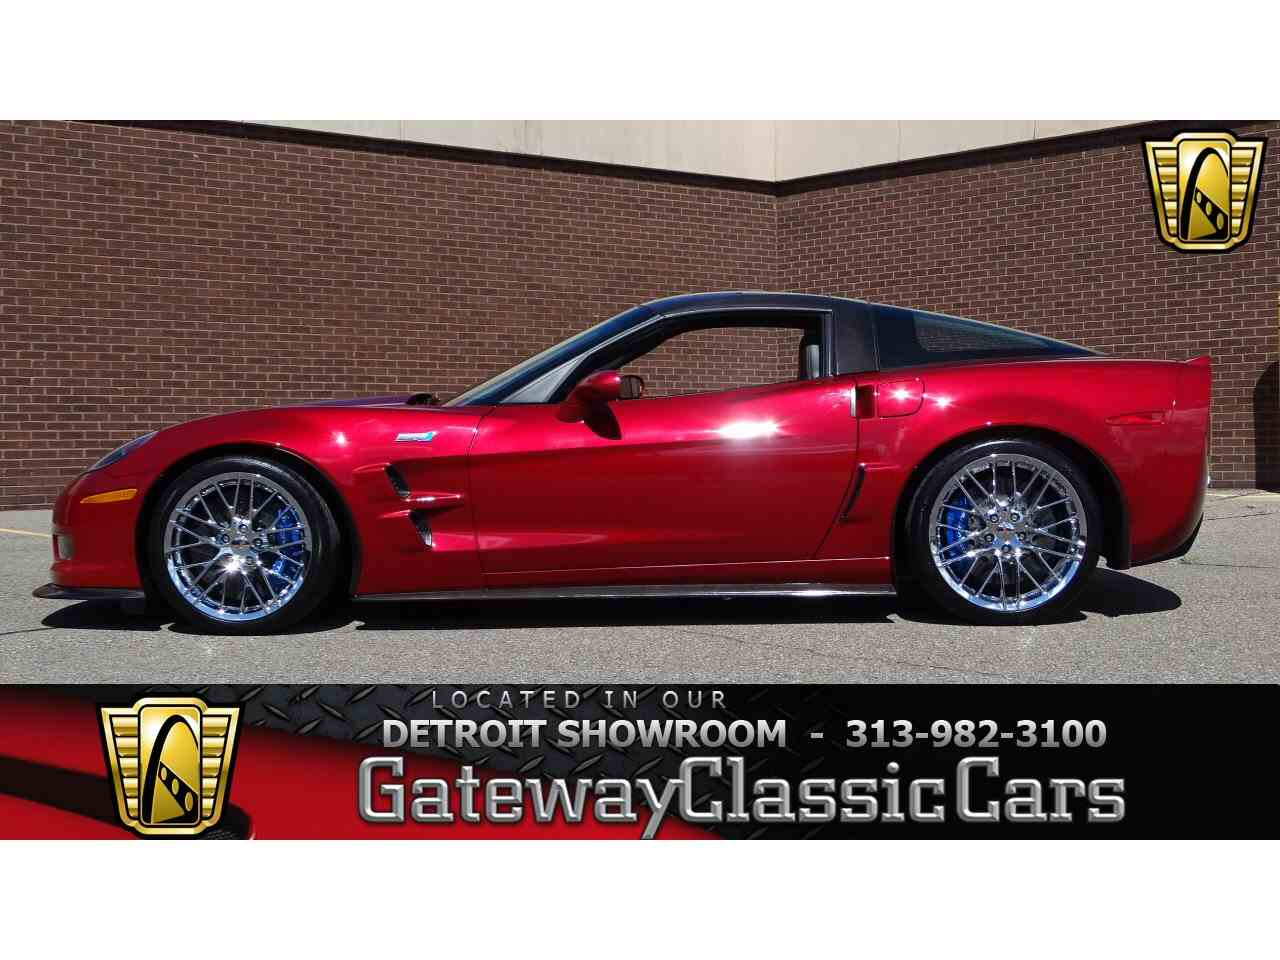 Large Picture of 2010 Corvette located in Michigan - $78,000.00 Offered by Gateway Classic Cars - Detroit - L8QM